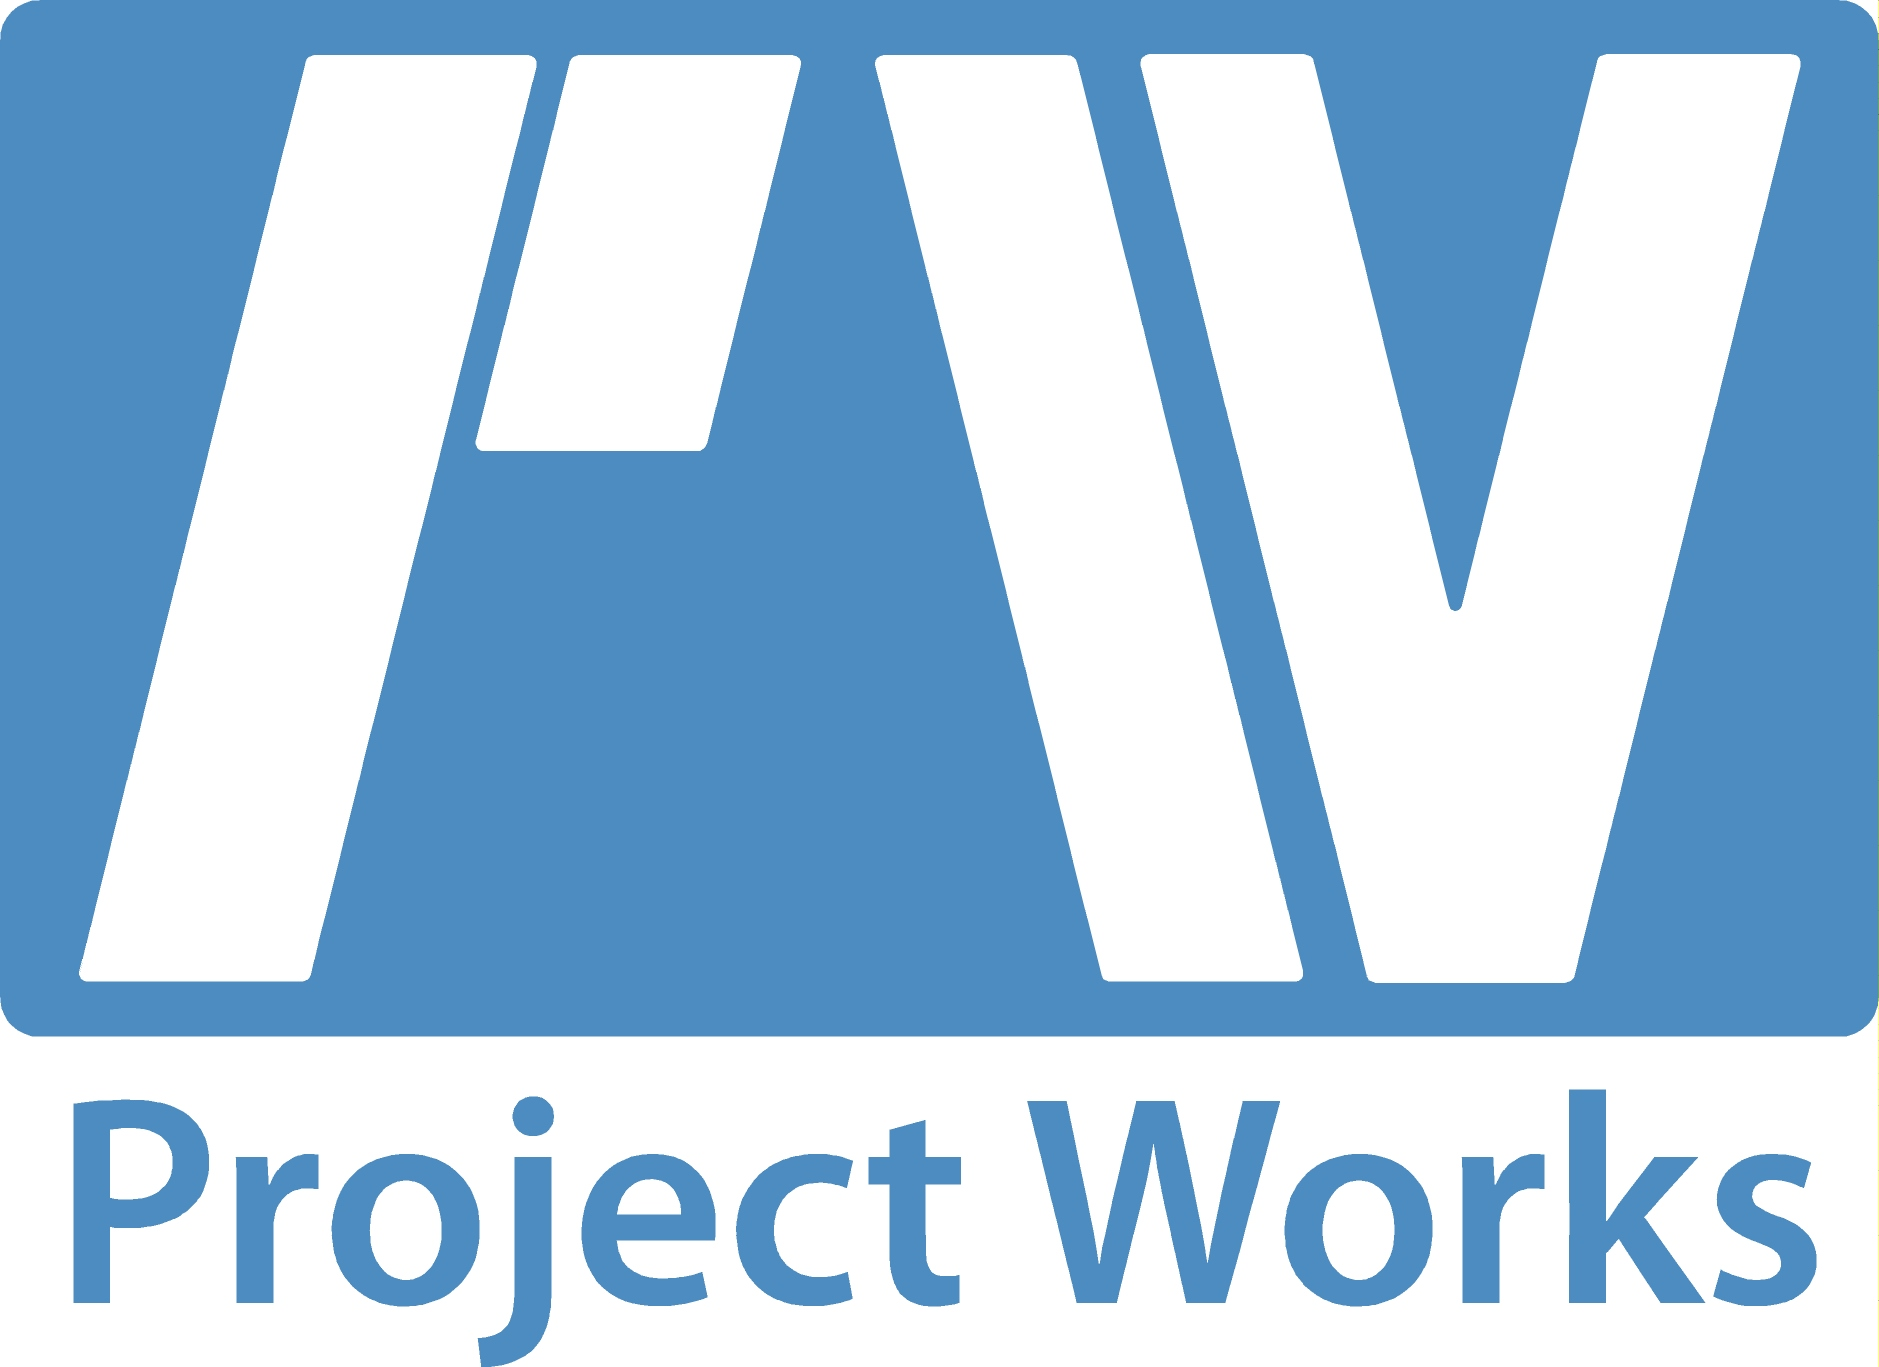 projectworks.com